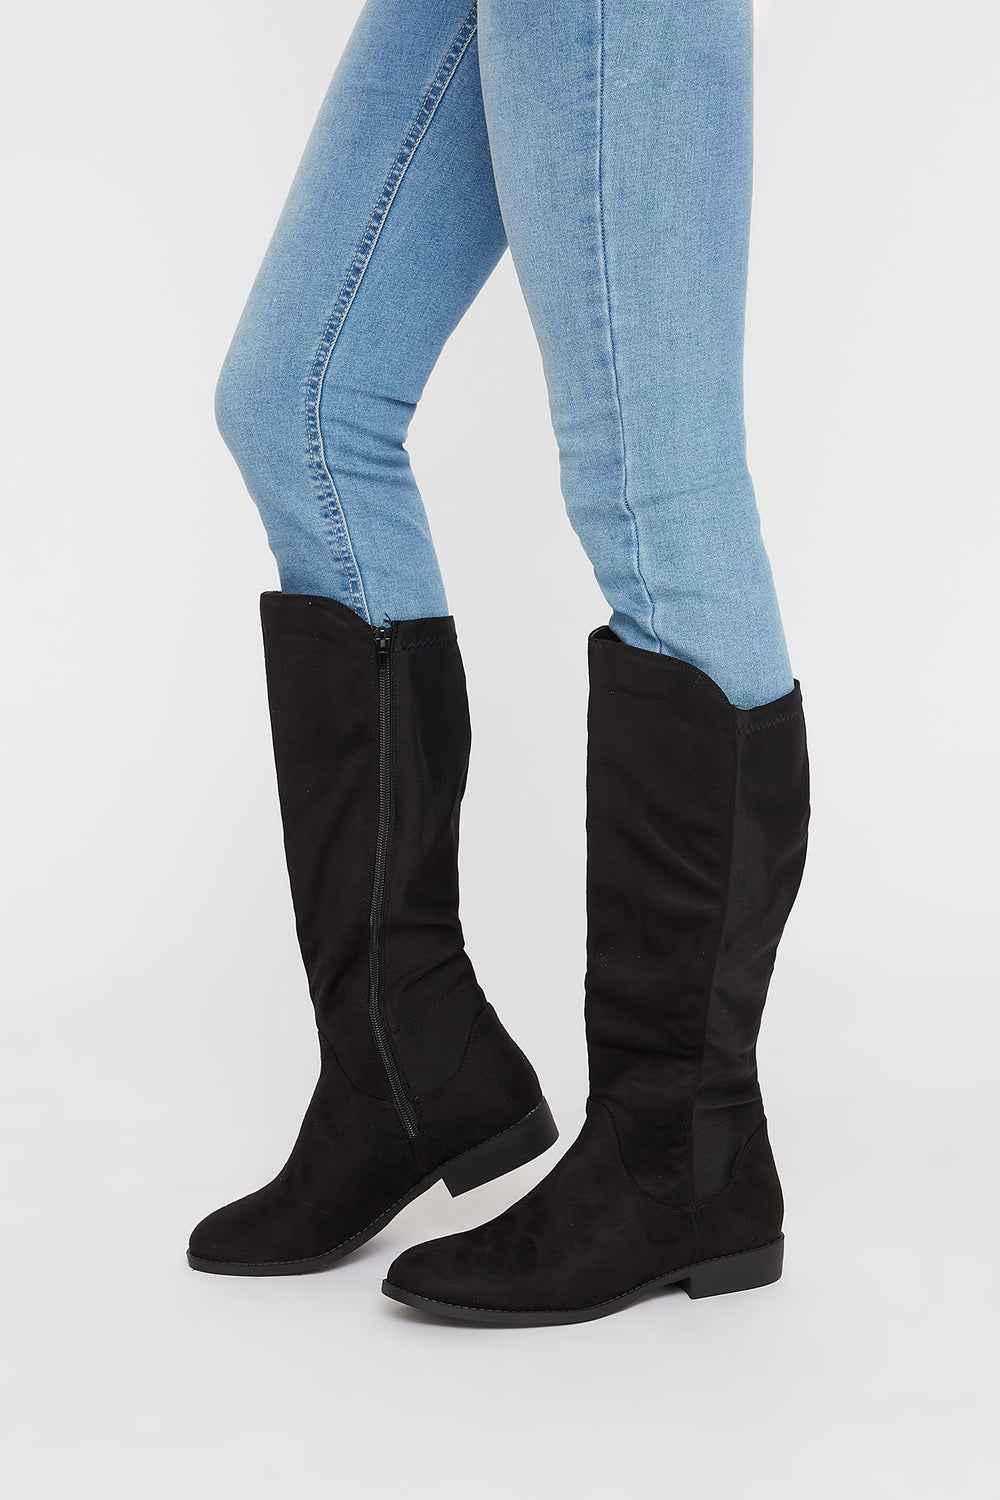 Contrast Knee High Boot Black